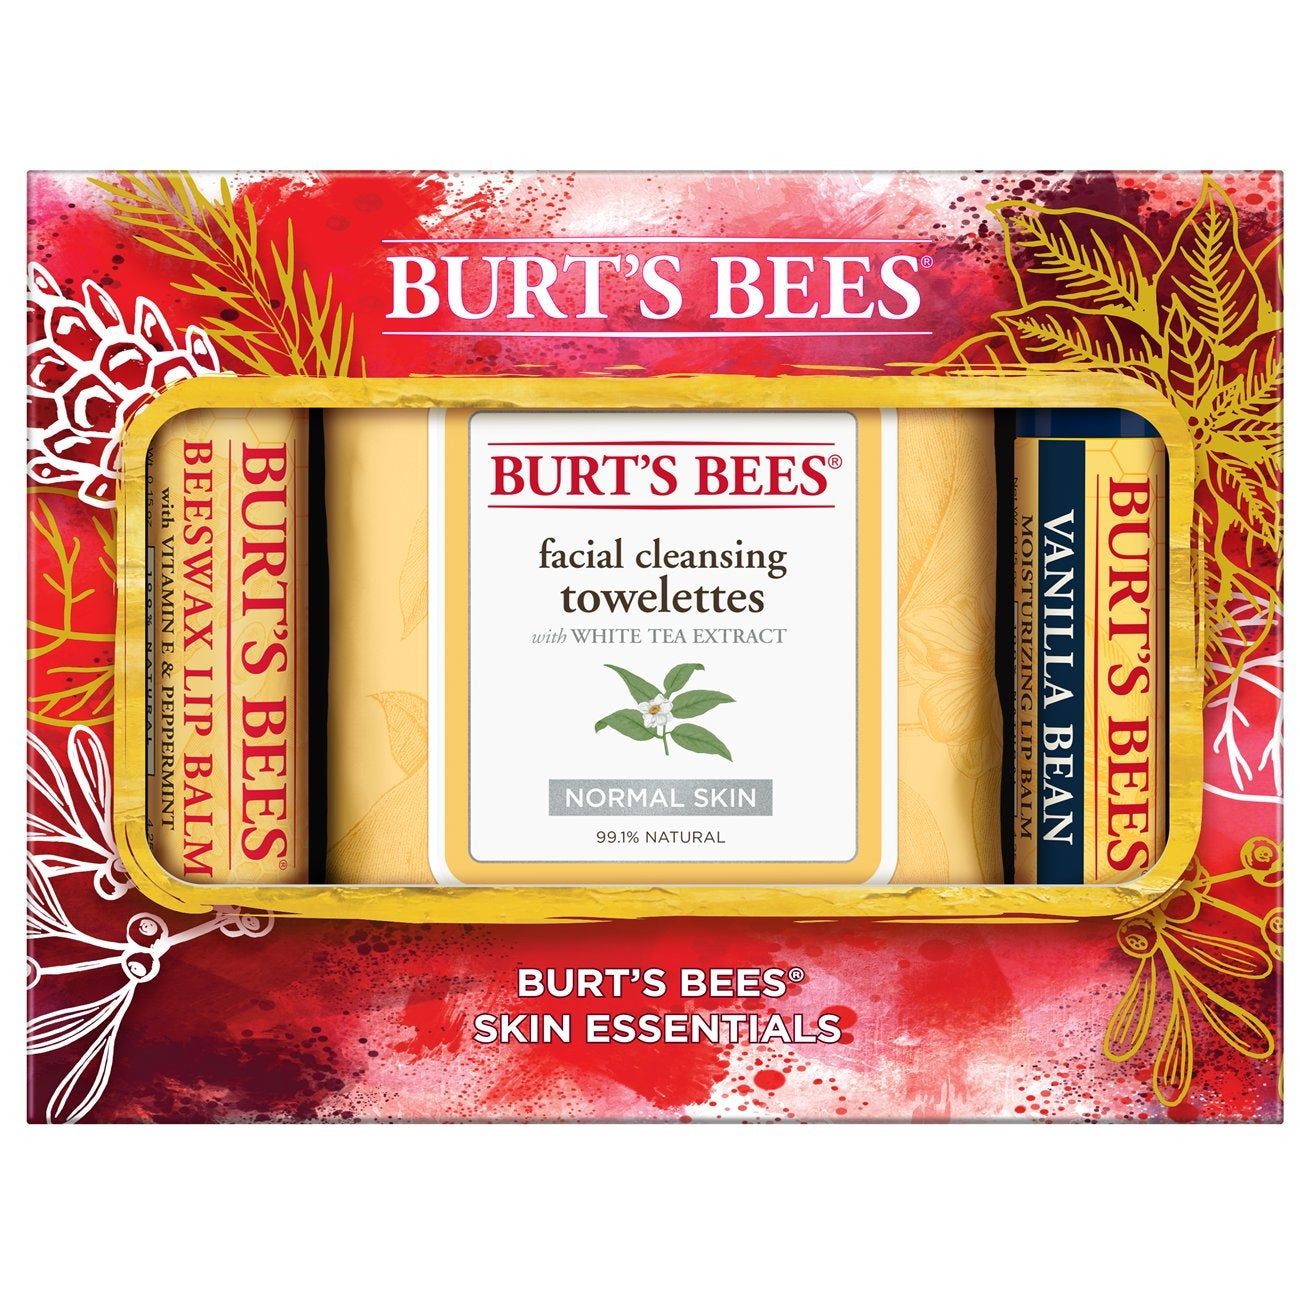 Burt's Bees Skin Essentials